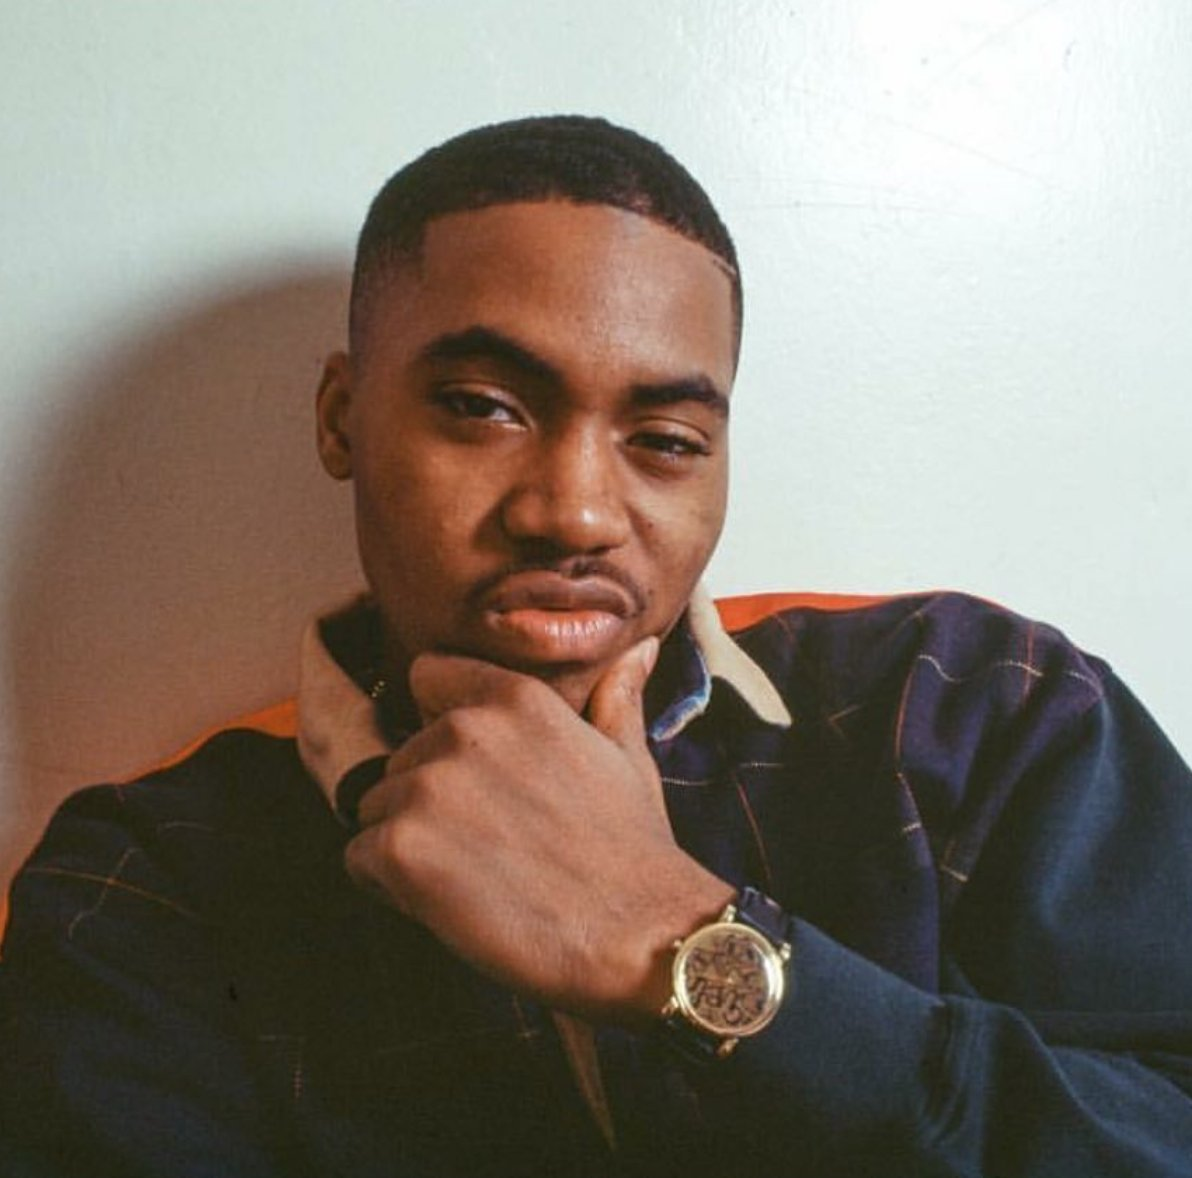 Happy 44th birthday to nas! chimodu  What are your top 3 songs of all time?